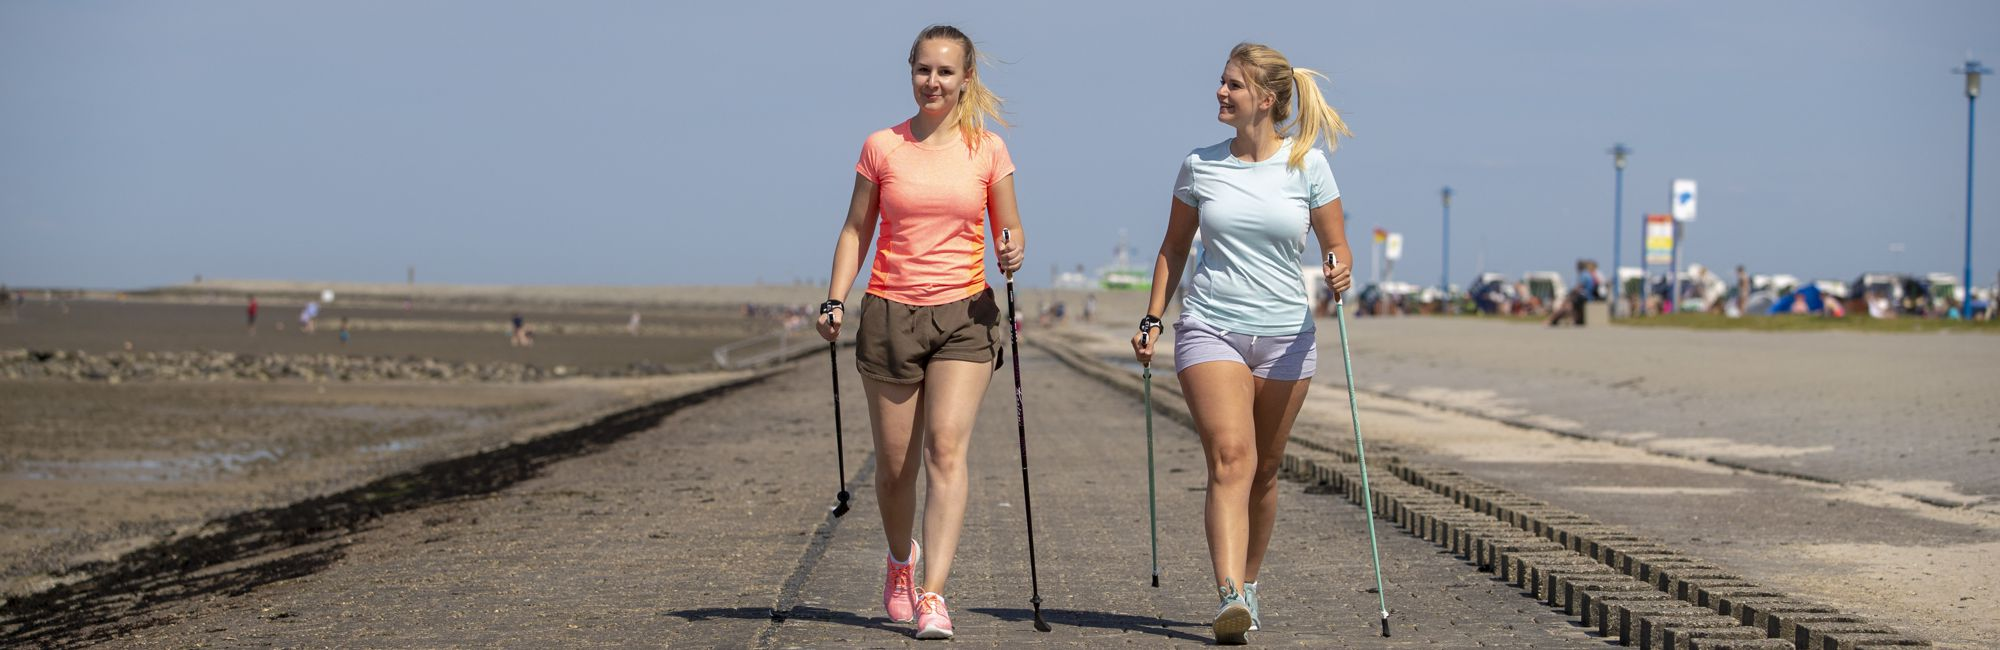 Nordic Walking am Nordsee-Strand